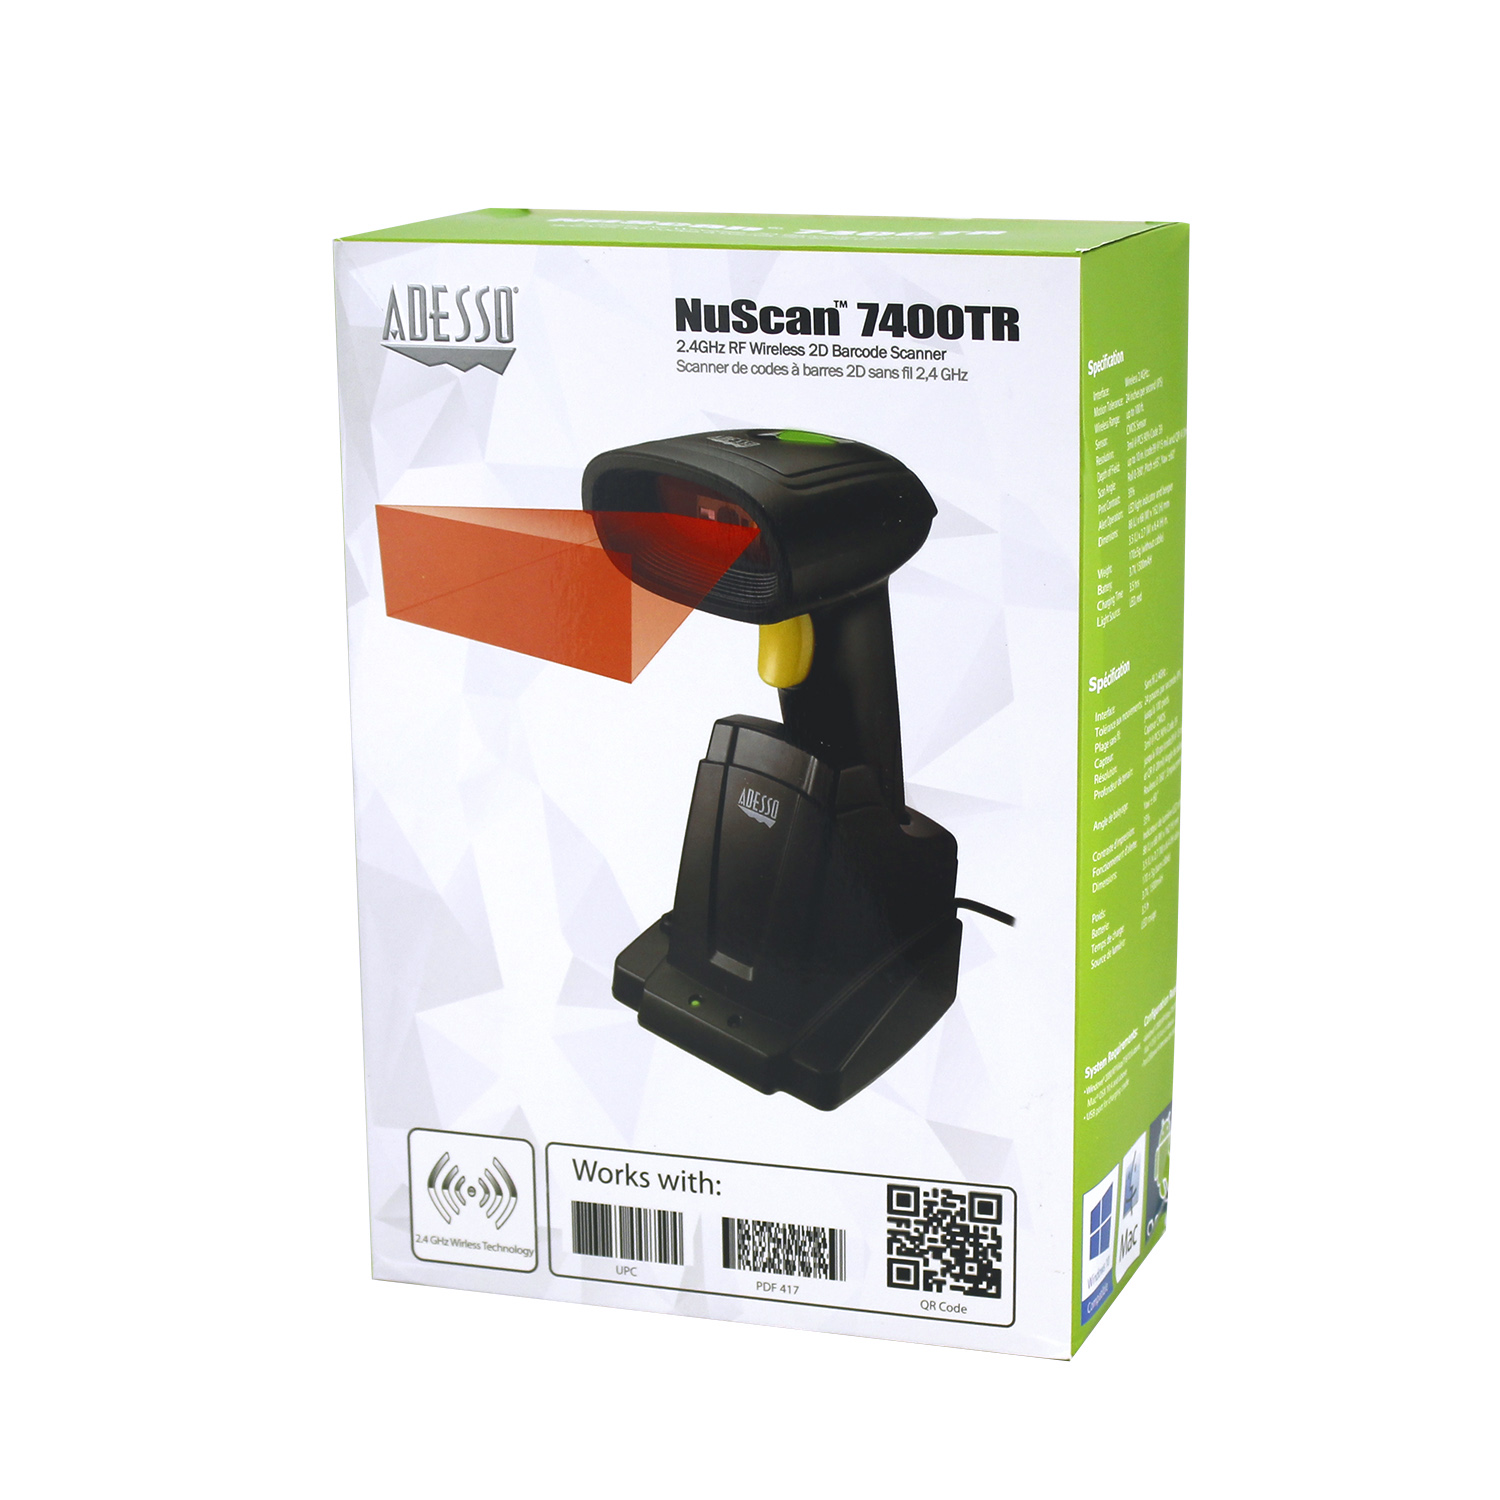 Nuscan 7400tr 24 Ghz Wireless 2d Barcode Scanner Adesso Inc